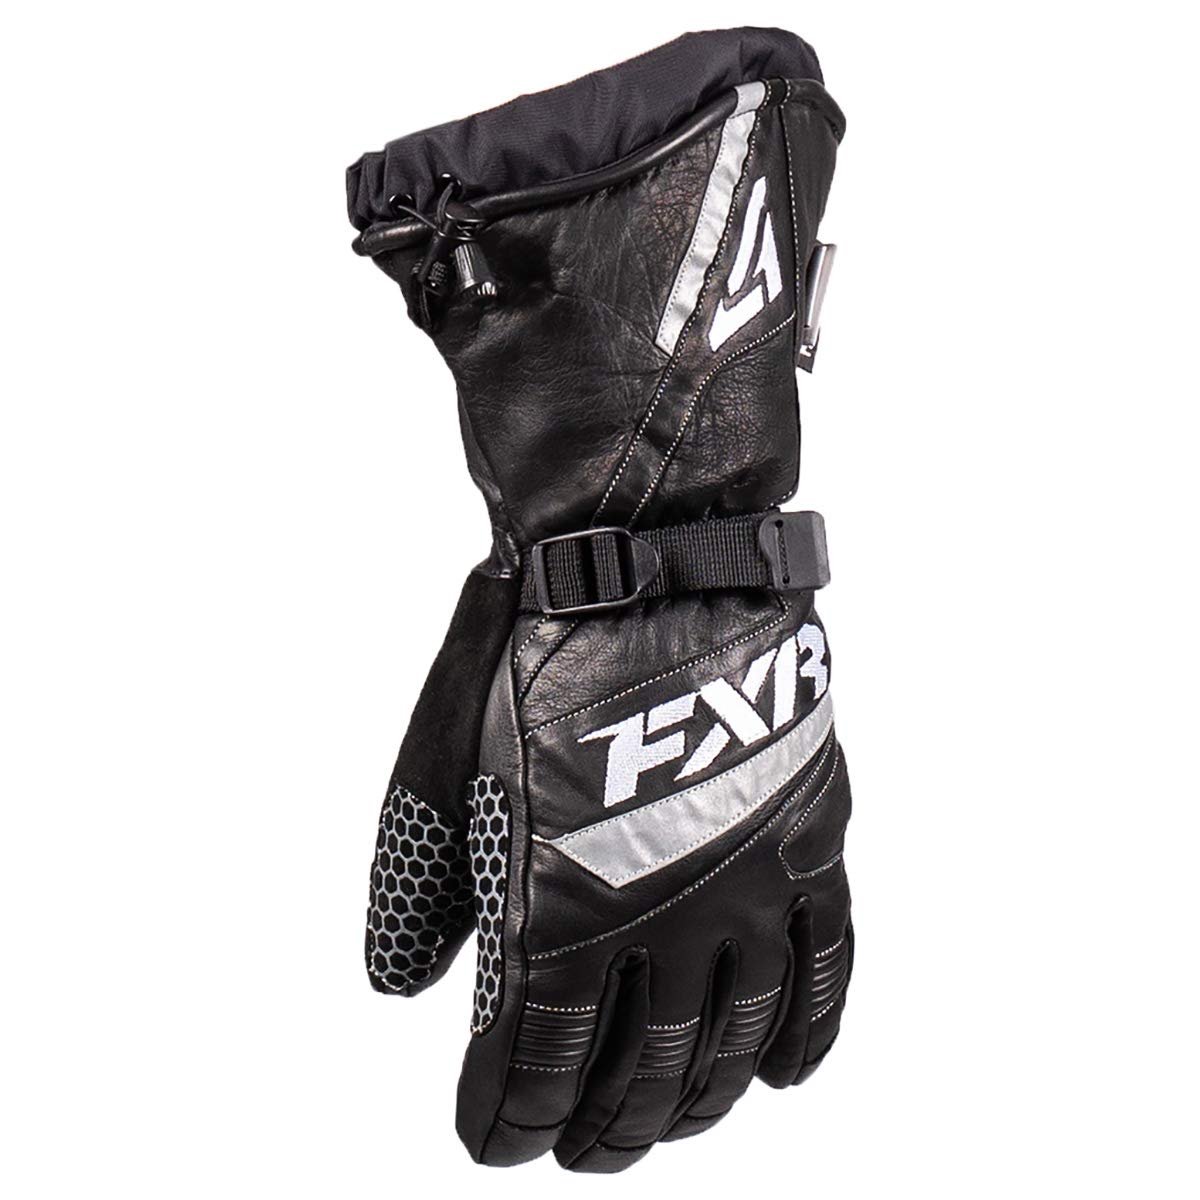 NEW FXR-SNOW GAUNTLET ADULT LEATHER/WATERPROOF GLOVES, BLACK, LARGE/LG